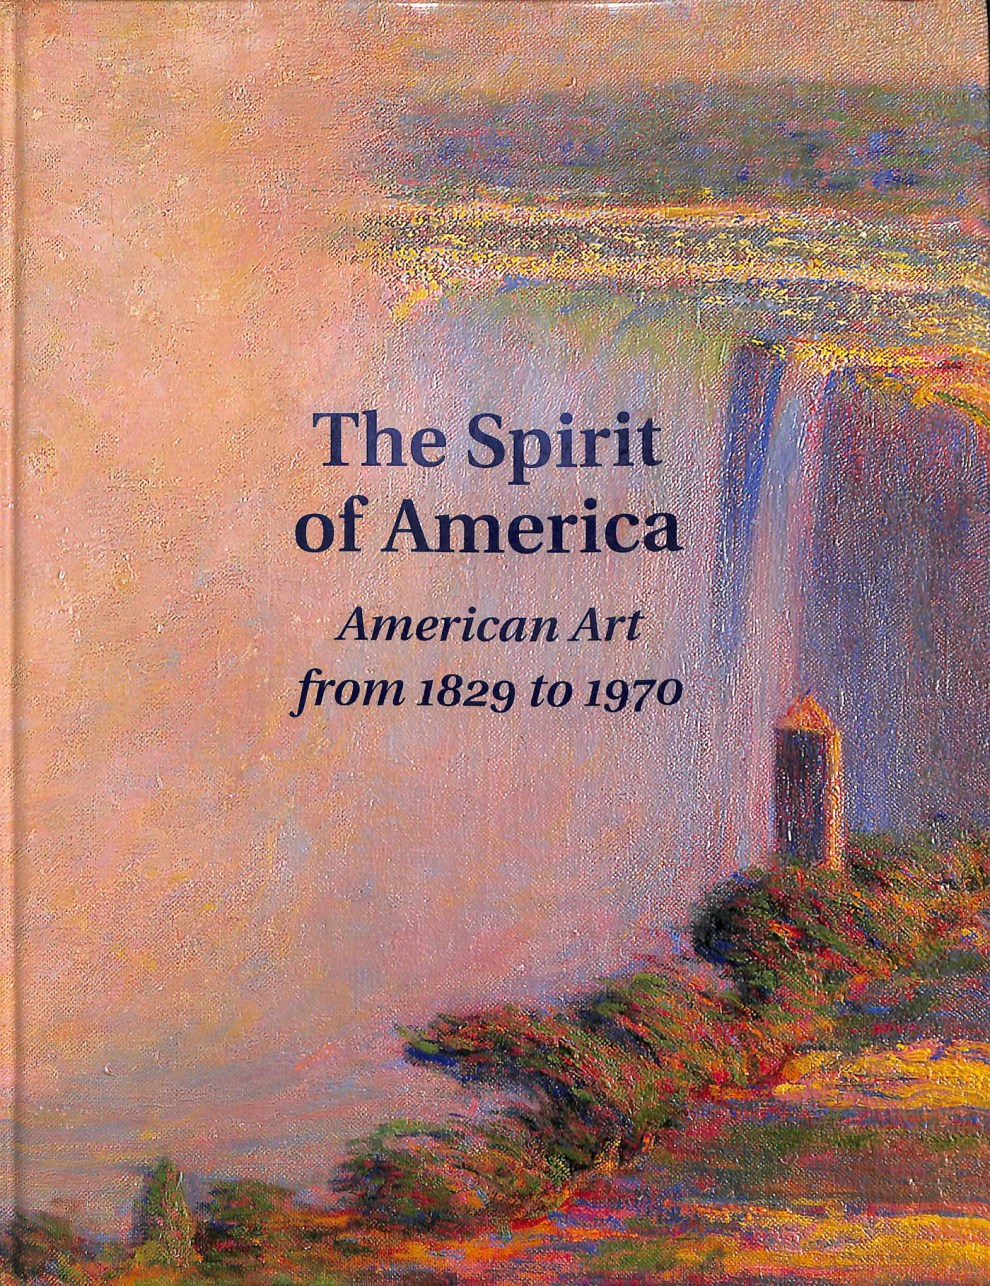 The Spirit of America Spanierman Gallery 2002